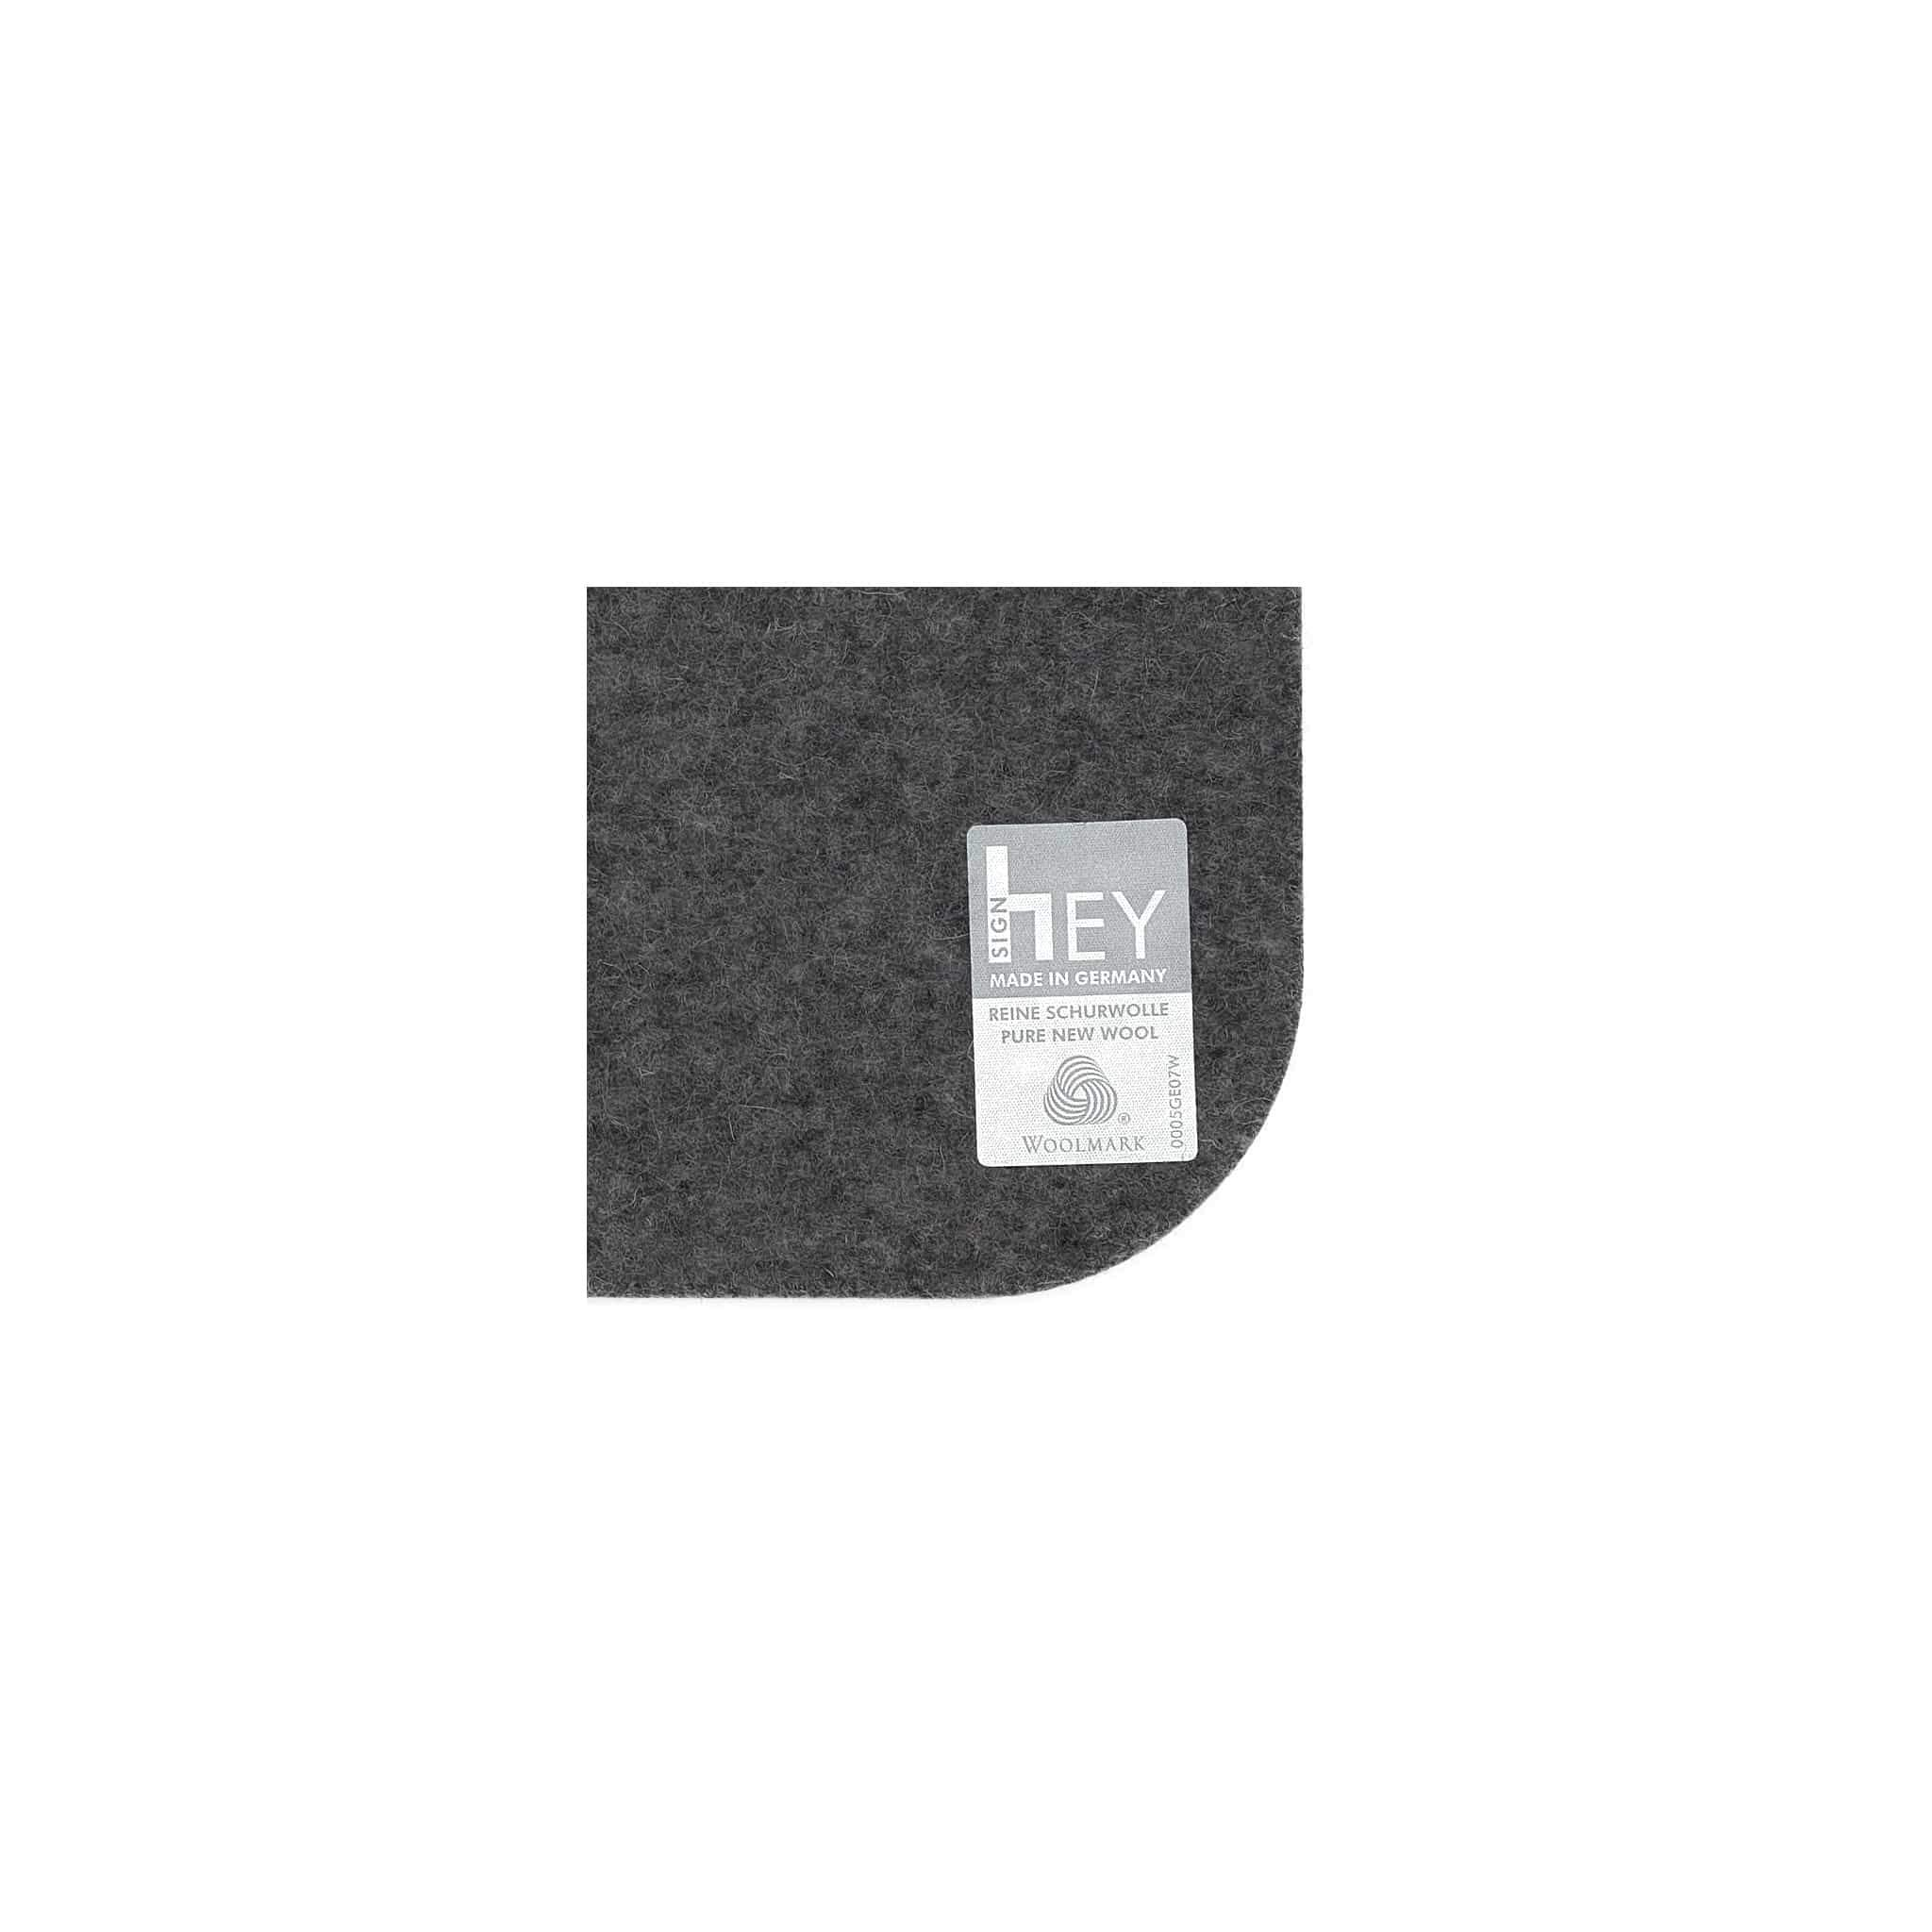 Rectangular Felt Placemat in Charcoal by Hey-Sign 300134501 looking at Closeup-Label